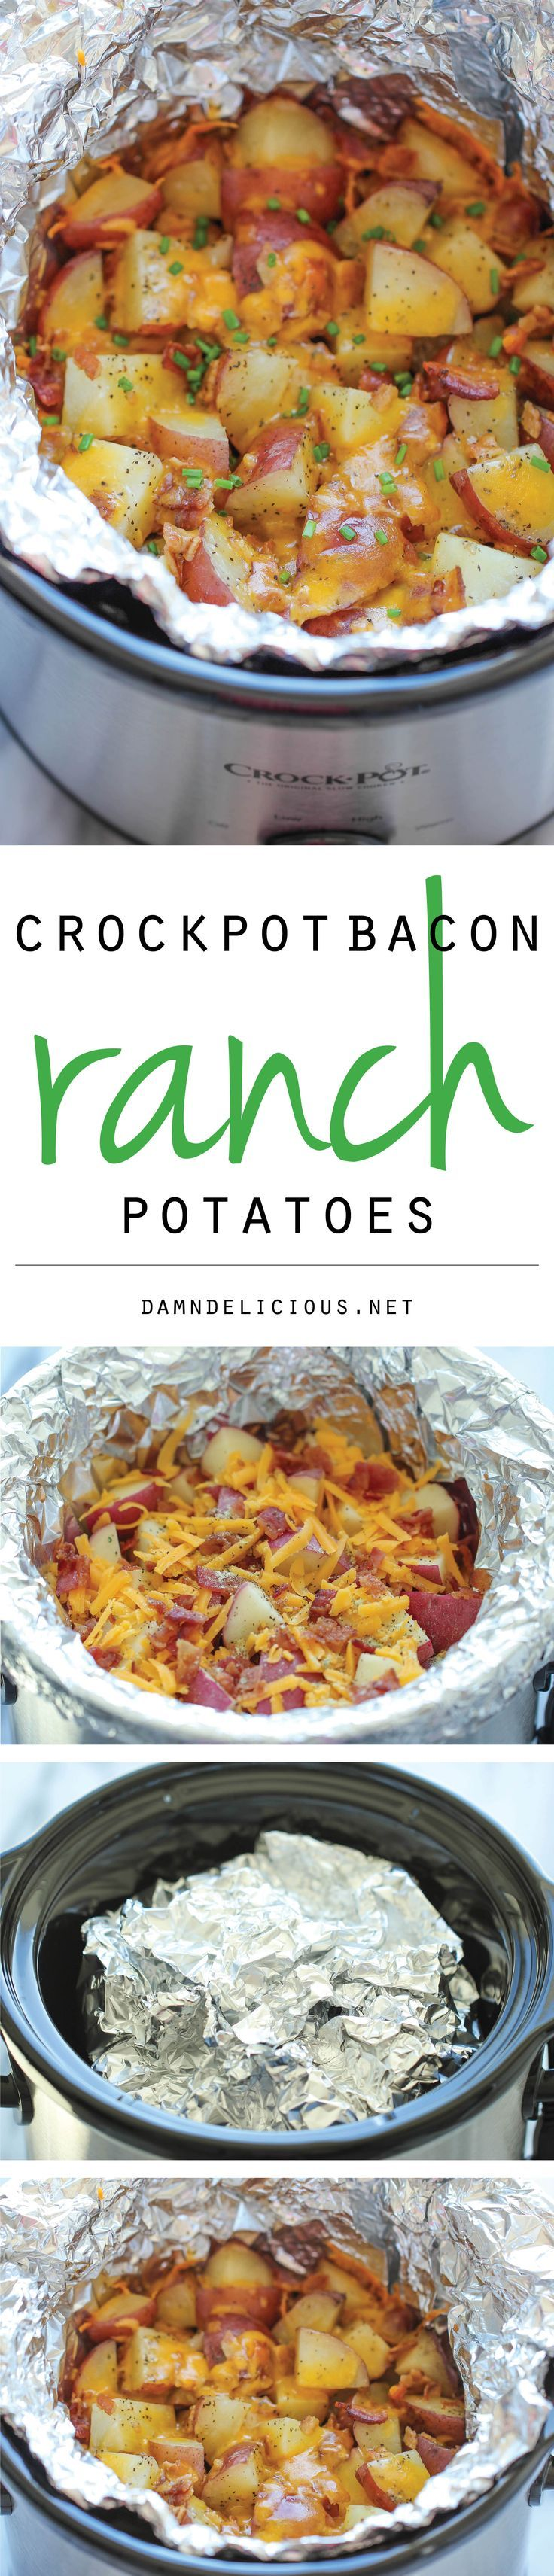 Slow Cooker Cheesy Bacon Ranch Potatoes - The easiest potatoes you can make right in the crockpot - perfectly tender, flavorful and cheesy!: